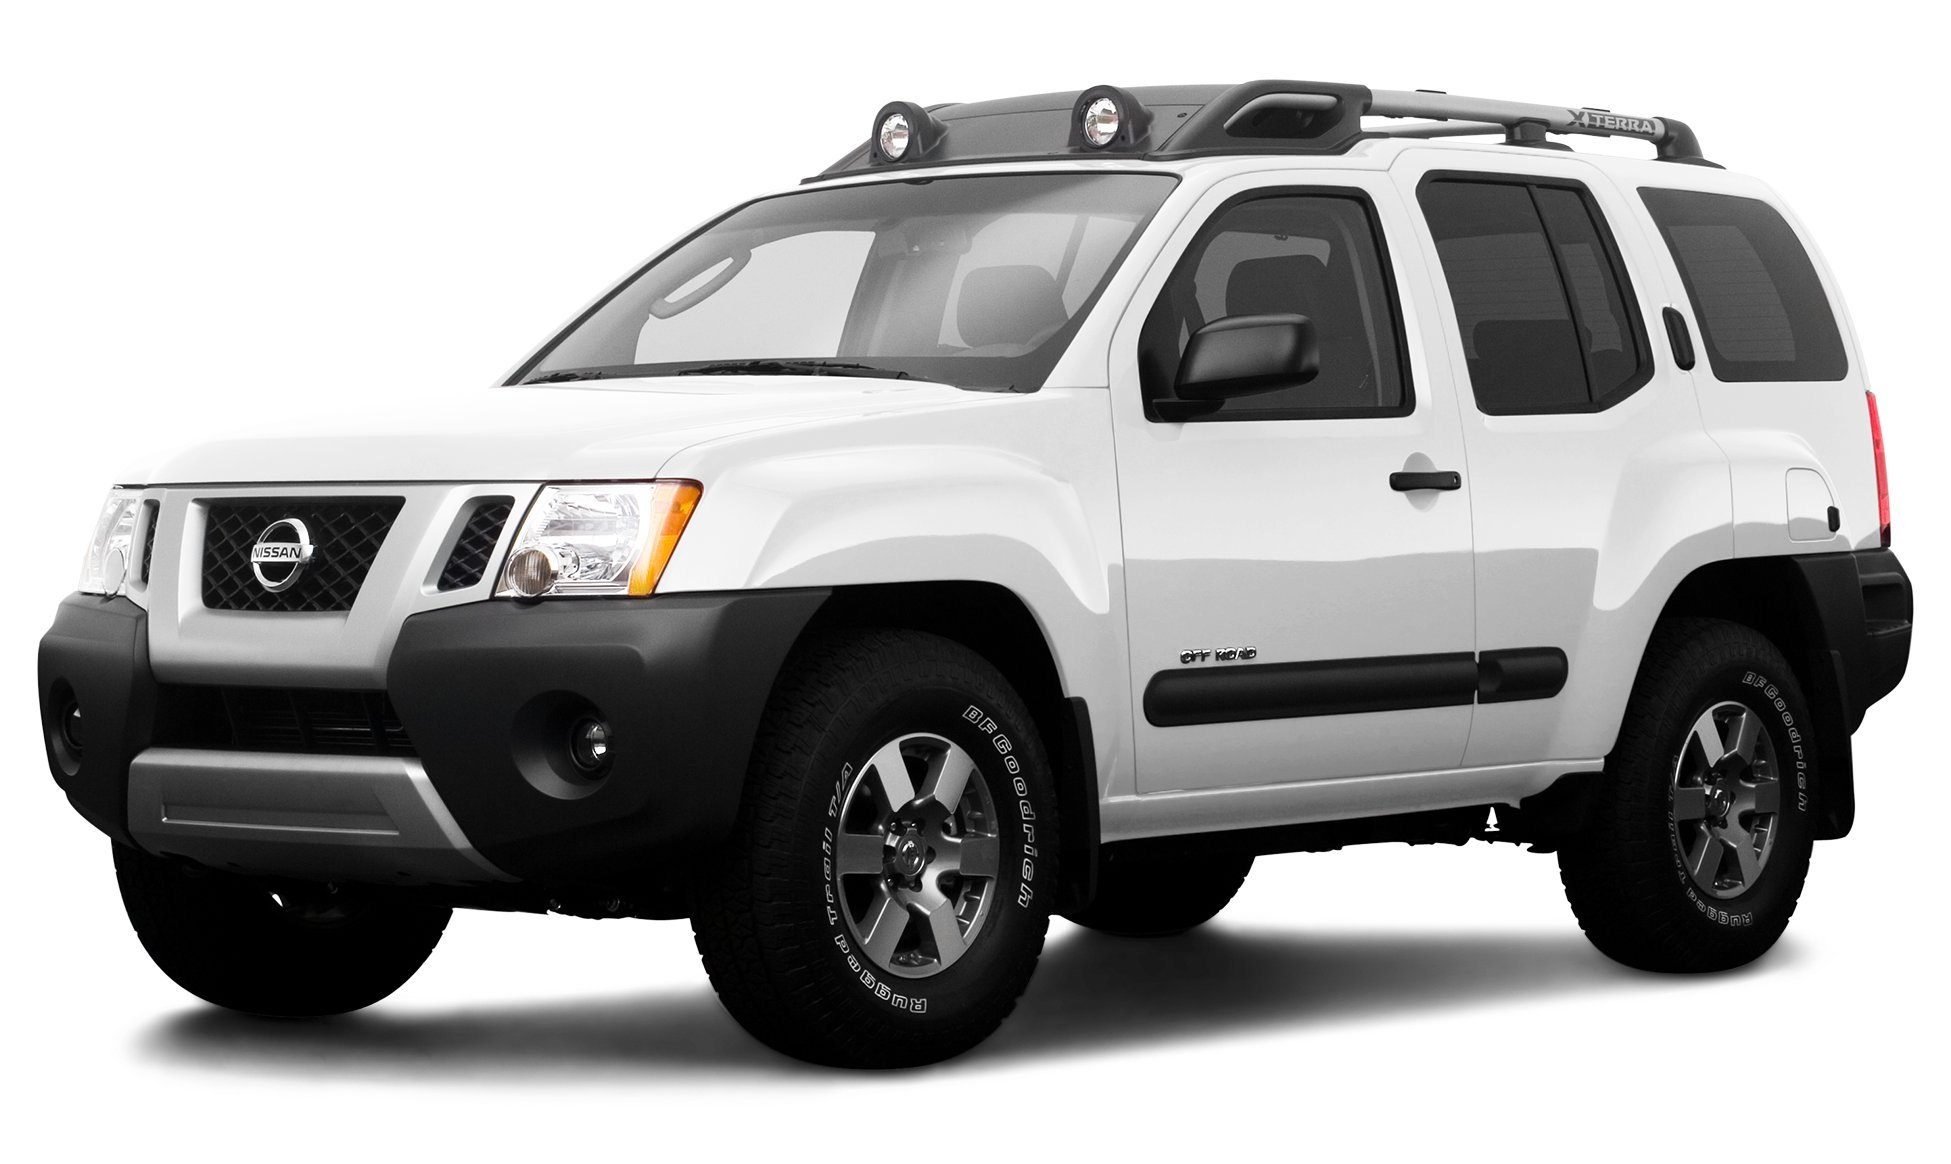 2009 Nissan Xterra Off Road, 4-Wheel Drive 4-Door Automatic Transmission ...